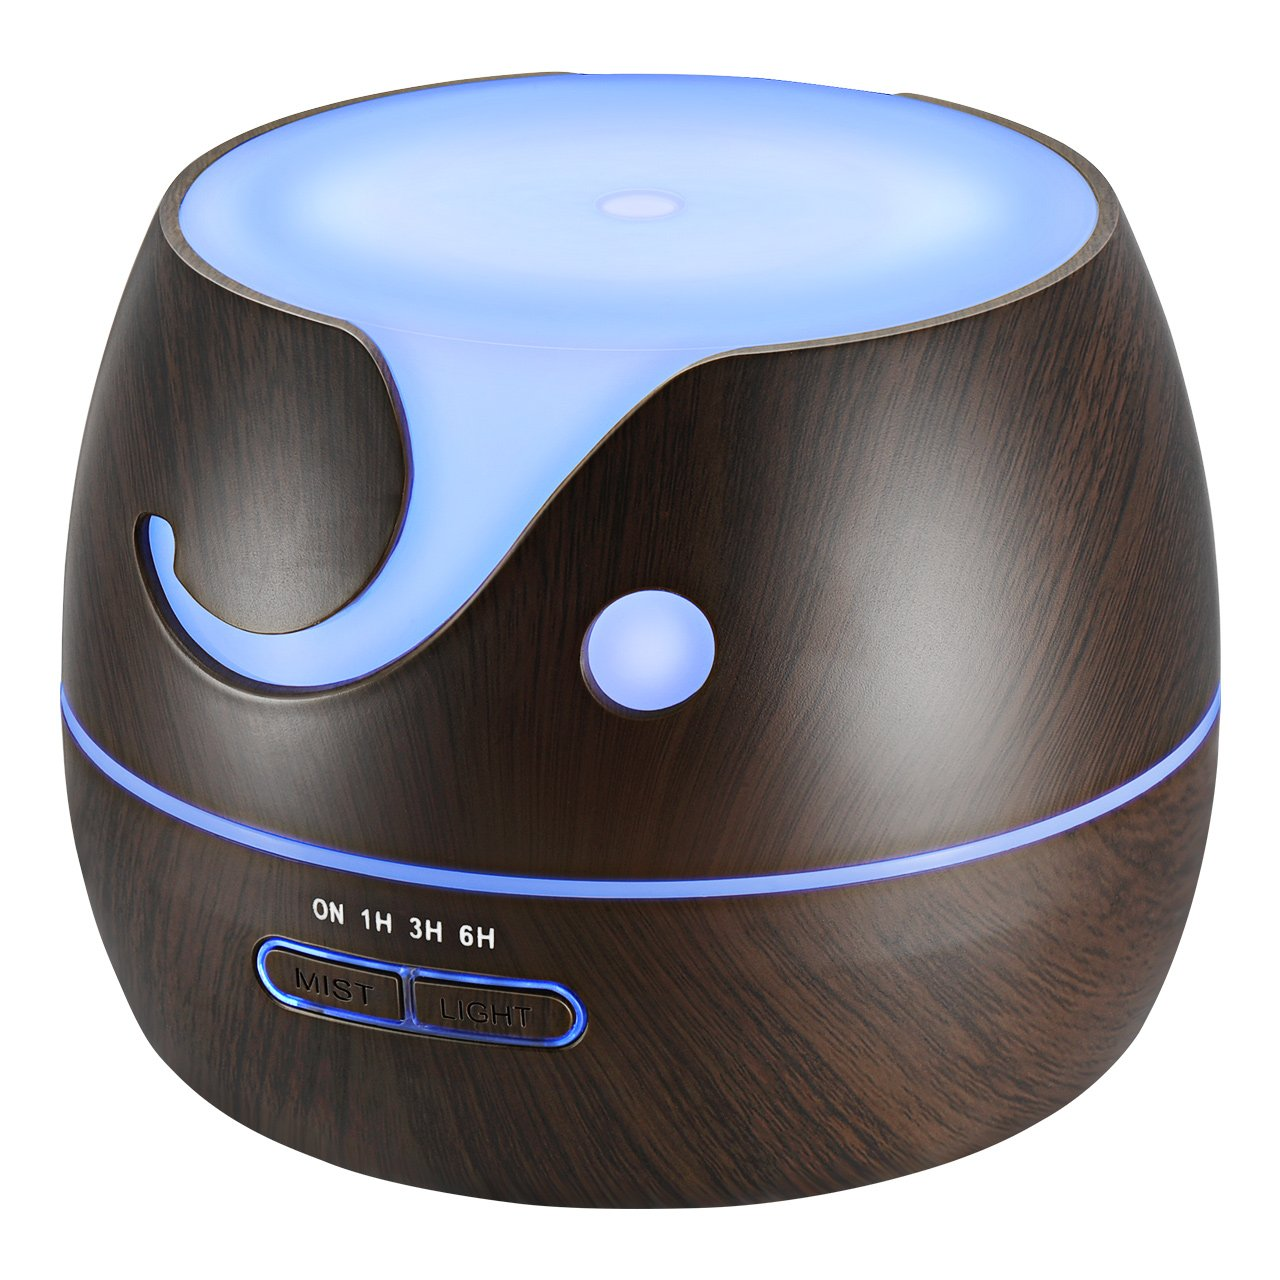 VicTsing Essential Oil Diffuser, 400ml Cute Elephant Shape Ultrasonic Cool Mist Humidifier with Wood Grain, 7 Color LED Lights & Waterless Auto-Off for Office Home Room Yoga Spa